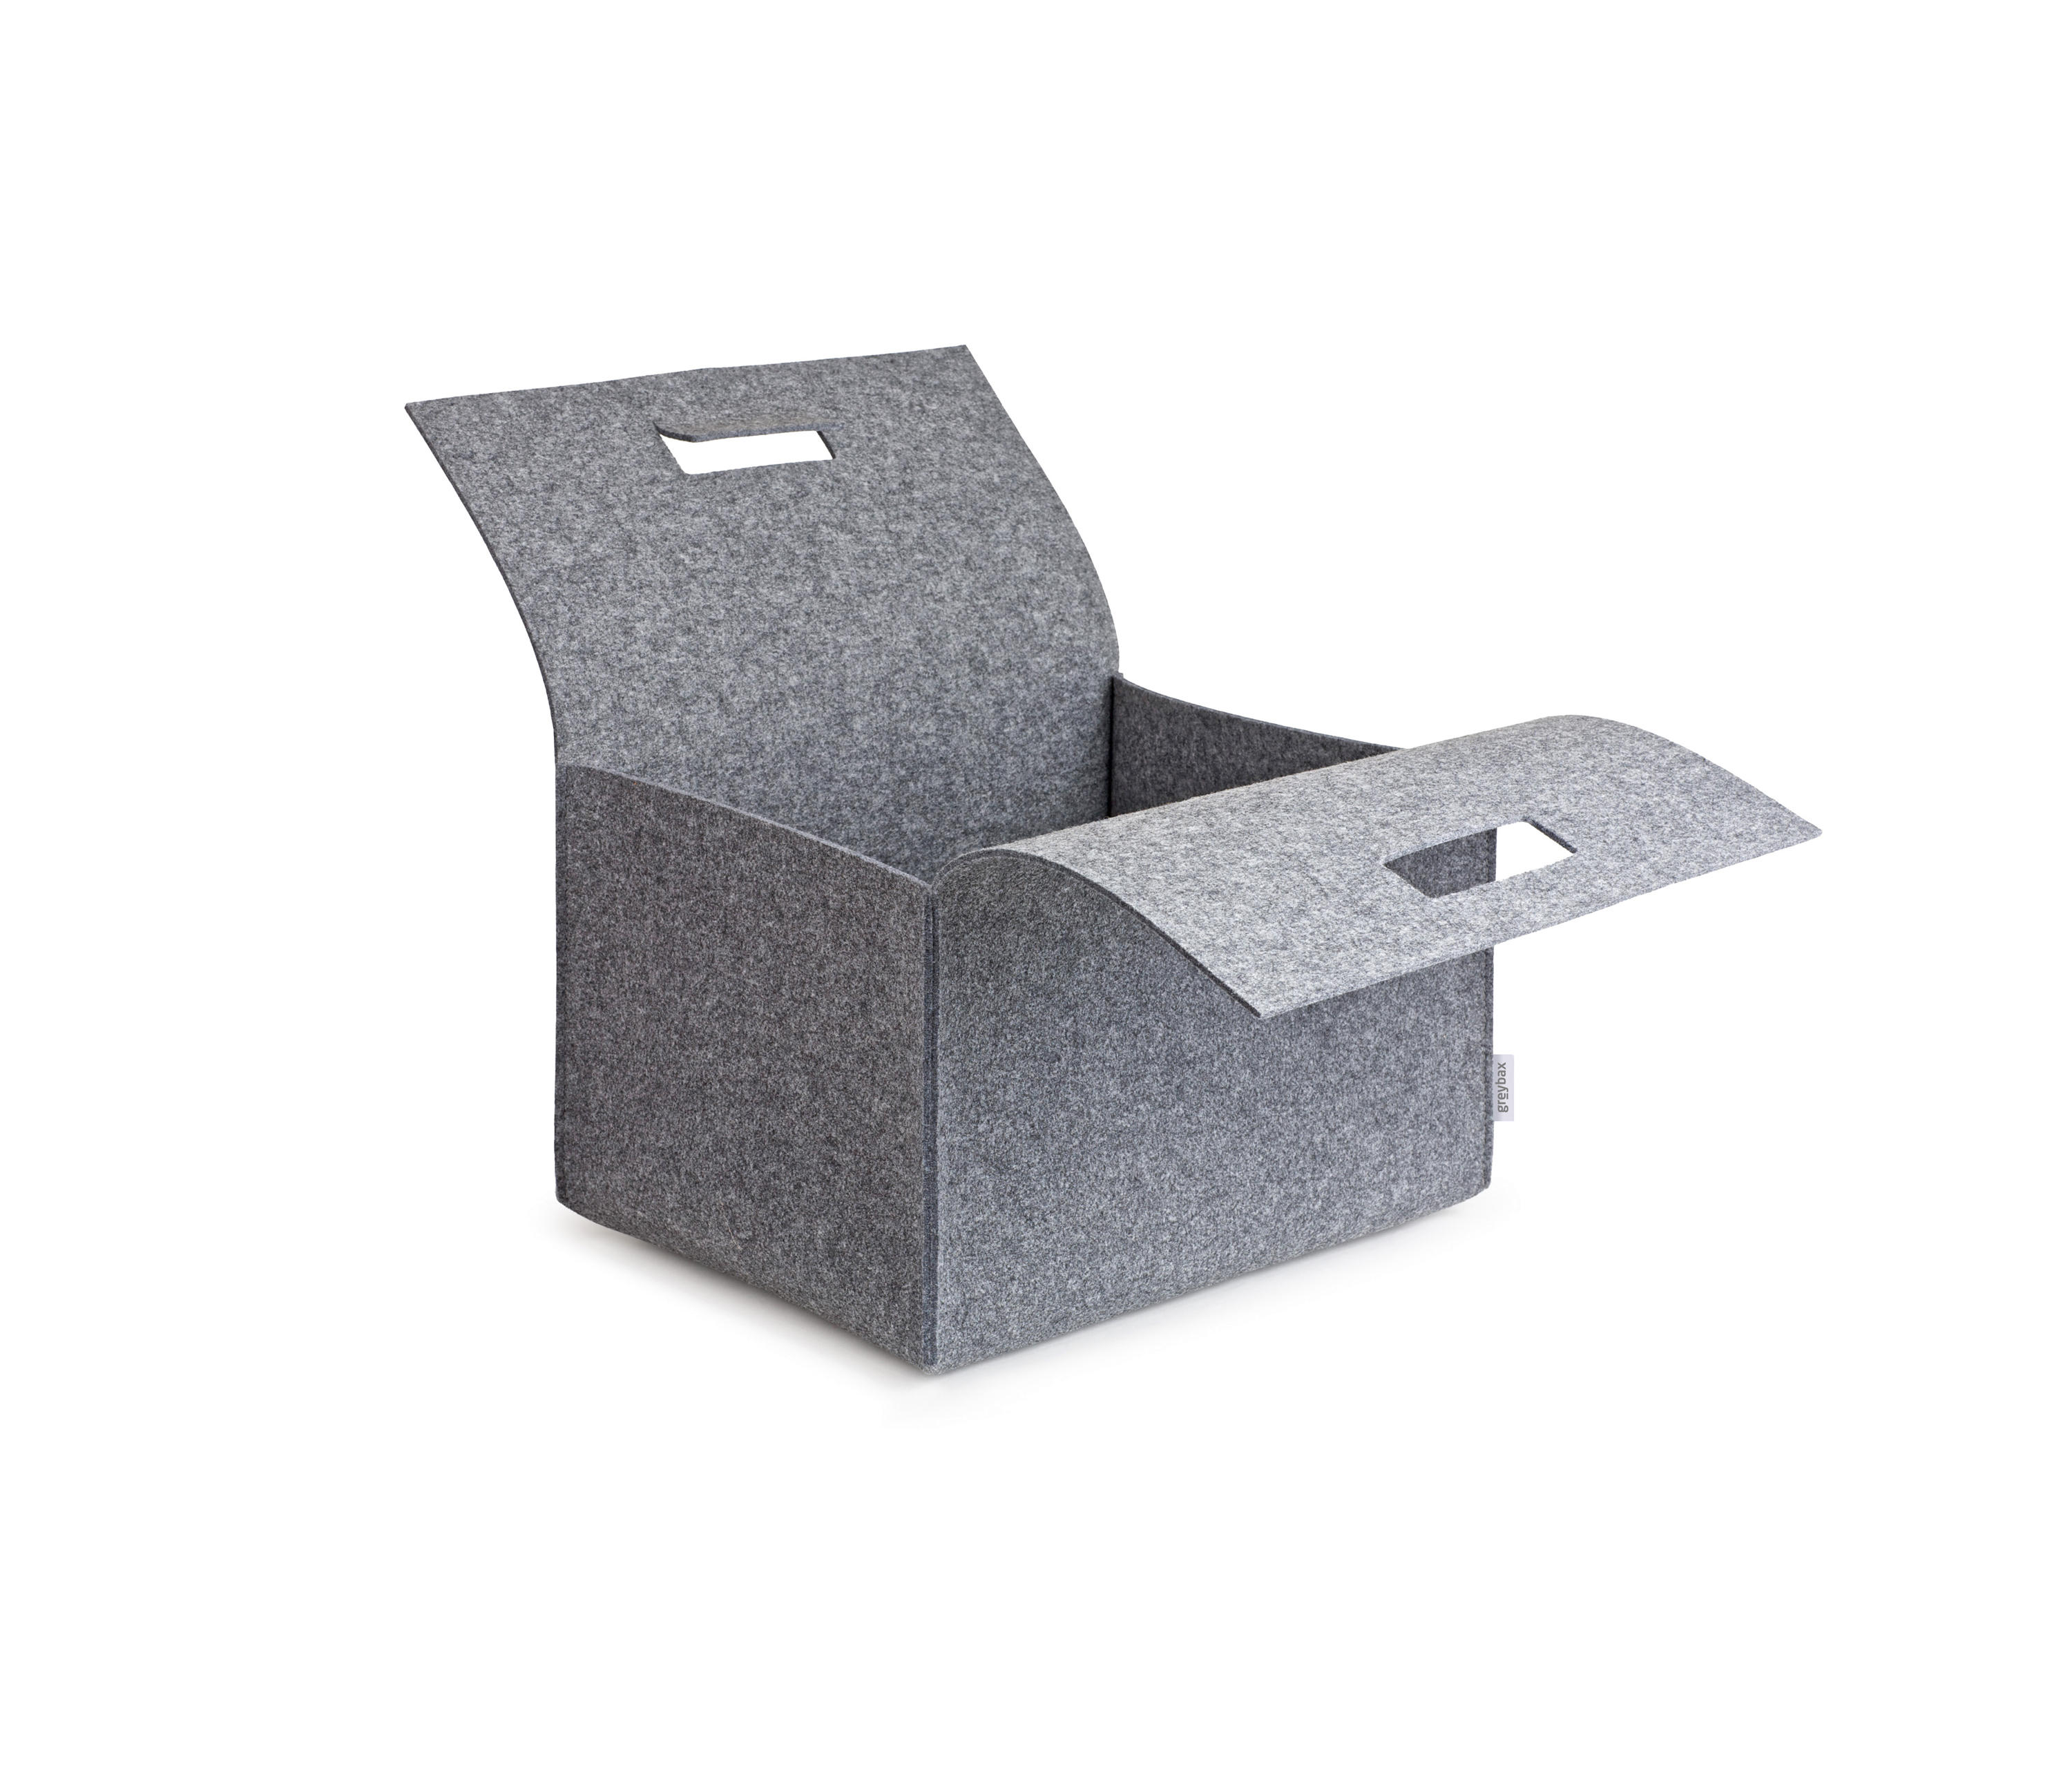 Porter Felt Carry Box by greybax | Storage boxes ...  sc 1 st  Architonic & PORTER FELT CARRY BOX - Storage boxes from greybax | Architonic